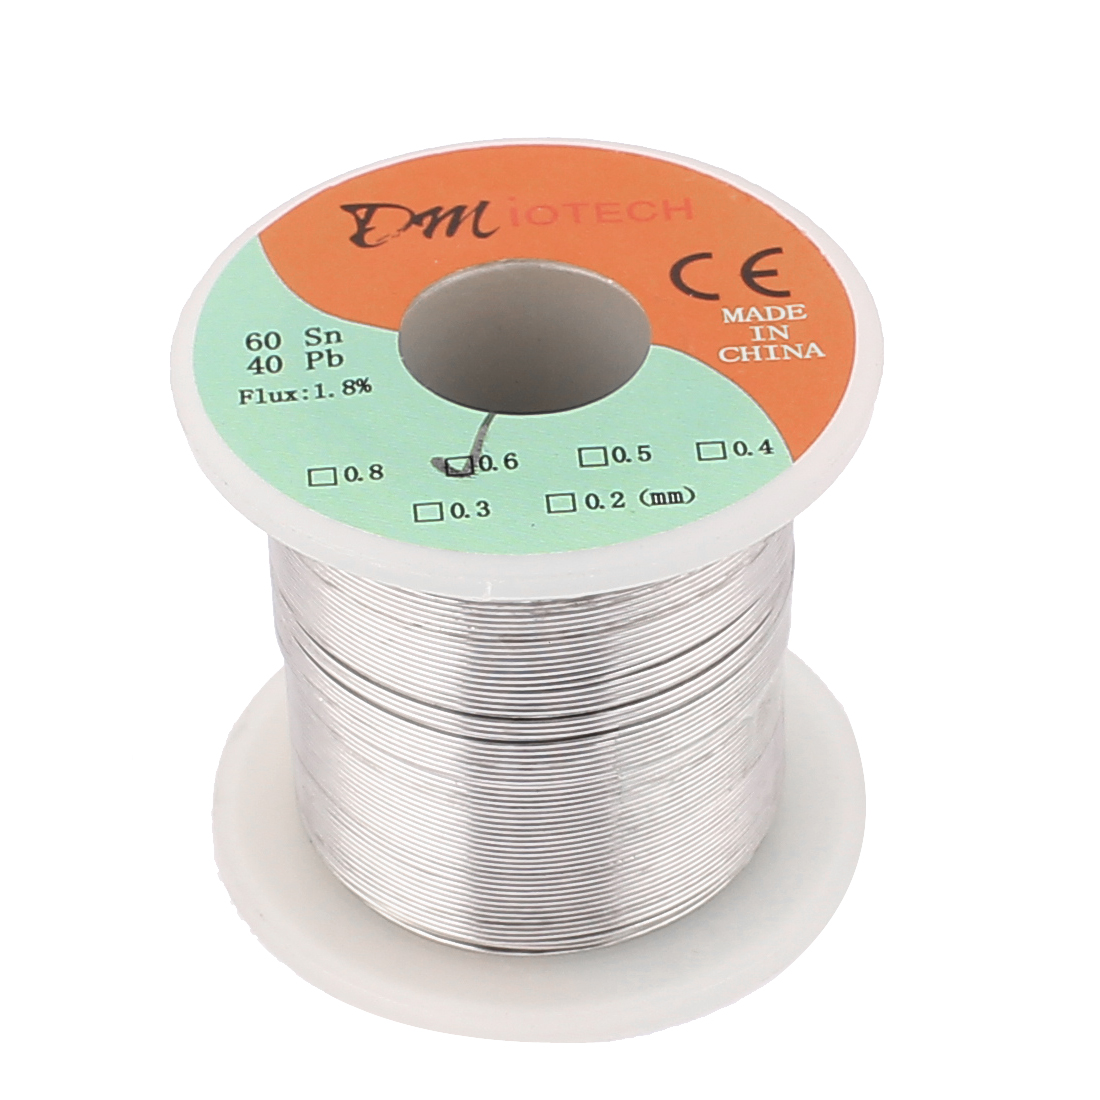 DMiotech 0.6mm 200g 60/40 Tin Lead Roll Solder Soldering Wire Spool Reel - image 2 of 2